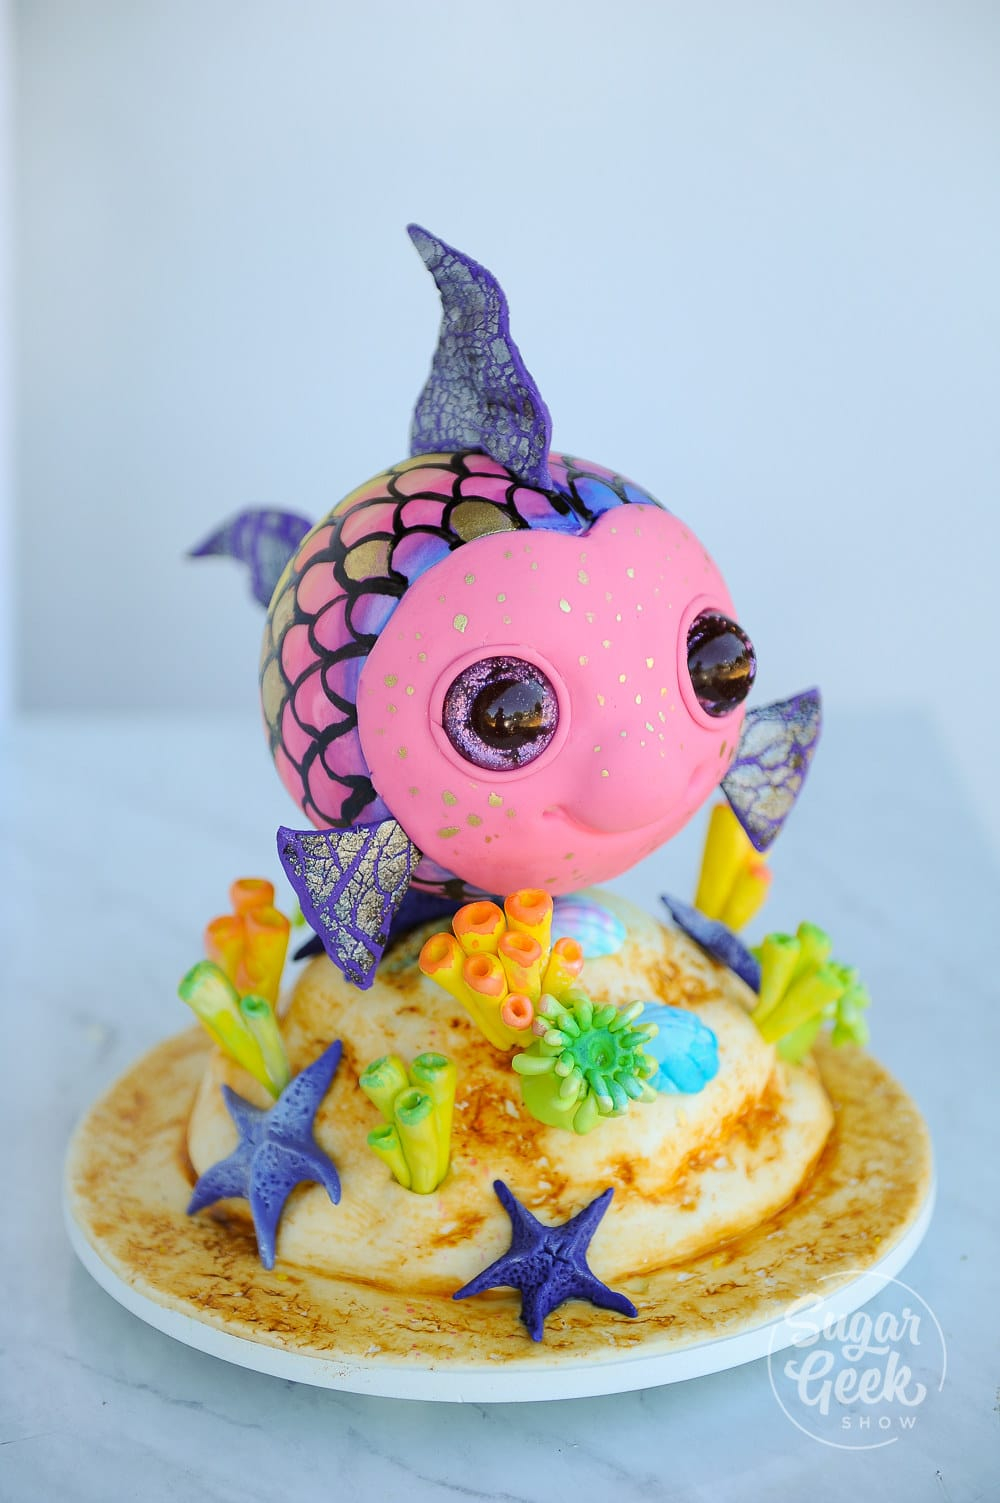 rainbow fish tutorial with a simple cake structure, glitter eyes, crackled fondant and fun watercolor scales